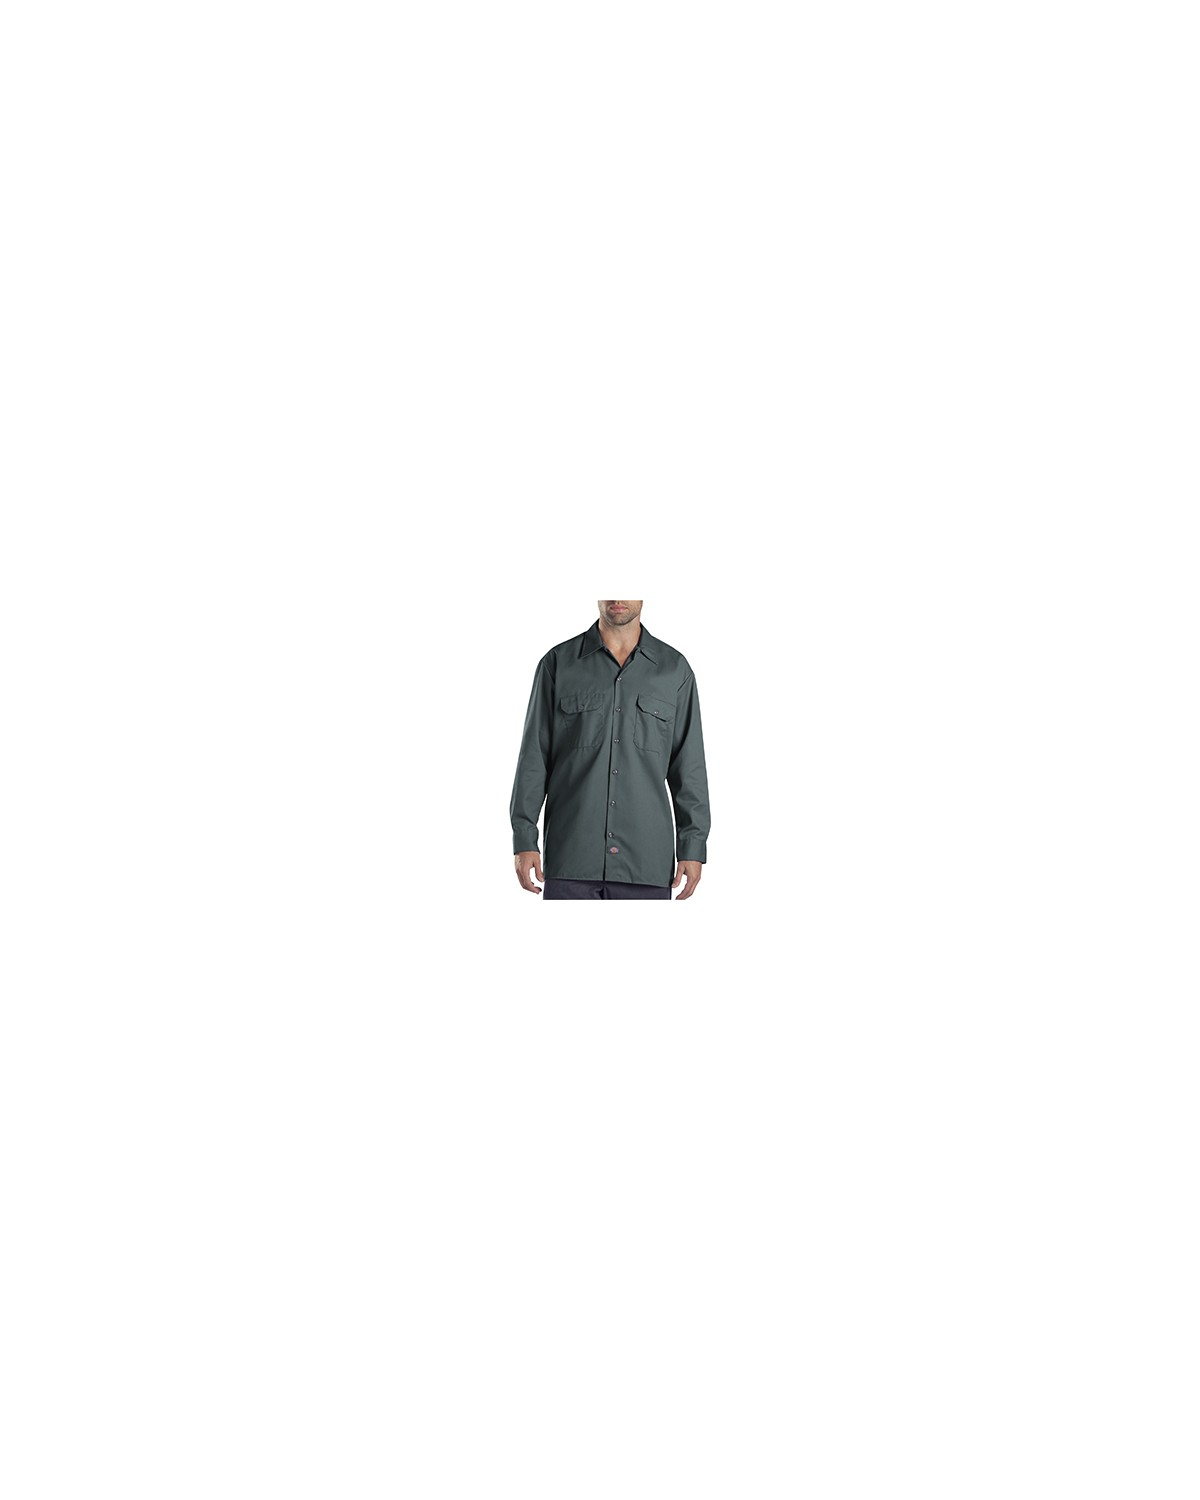 574 Dickies LINCOLN GREEN